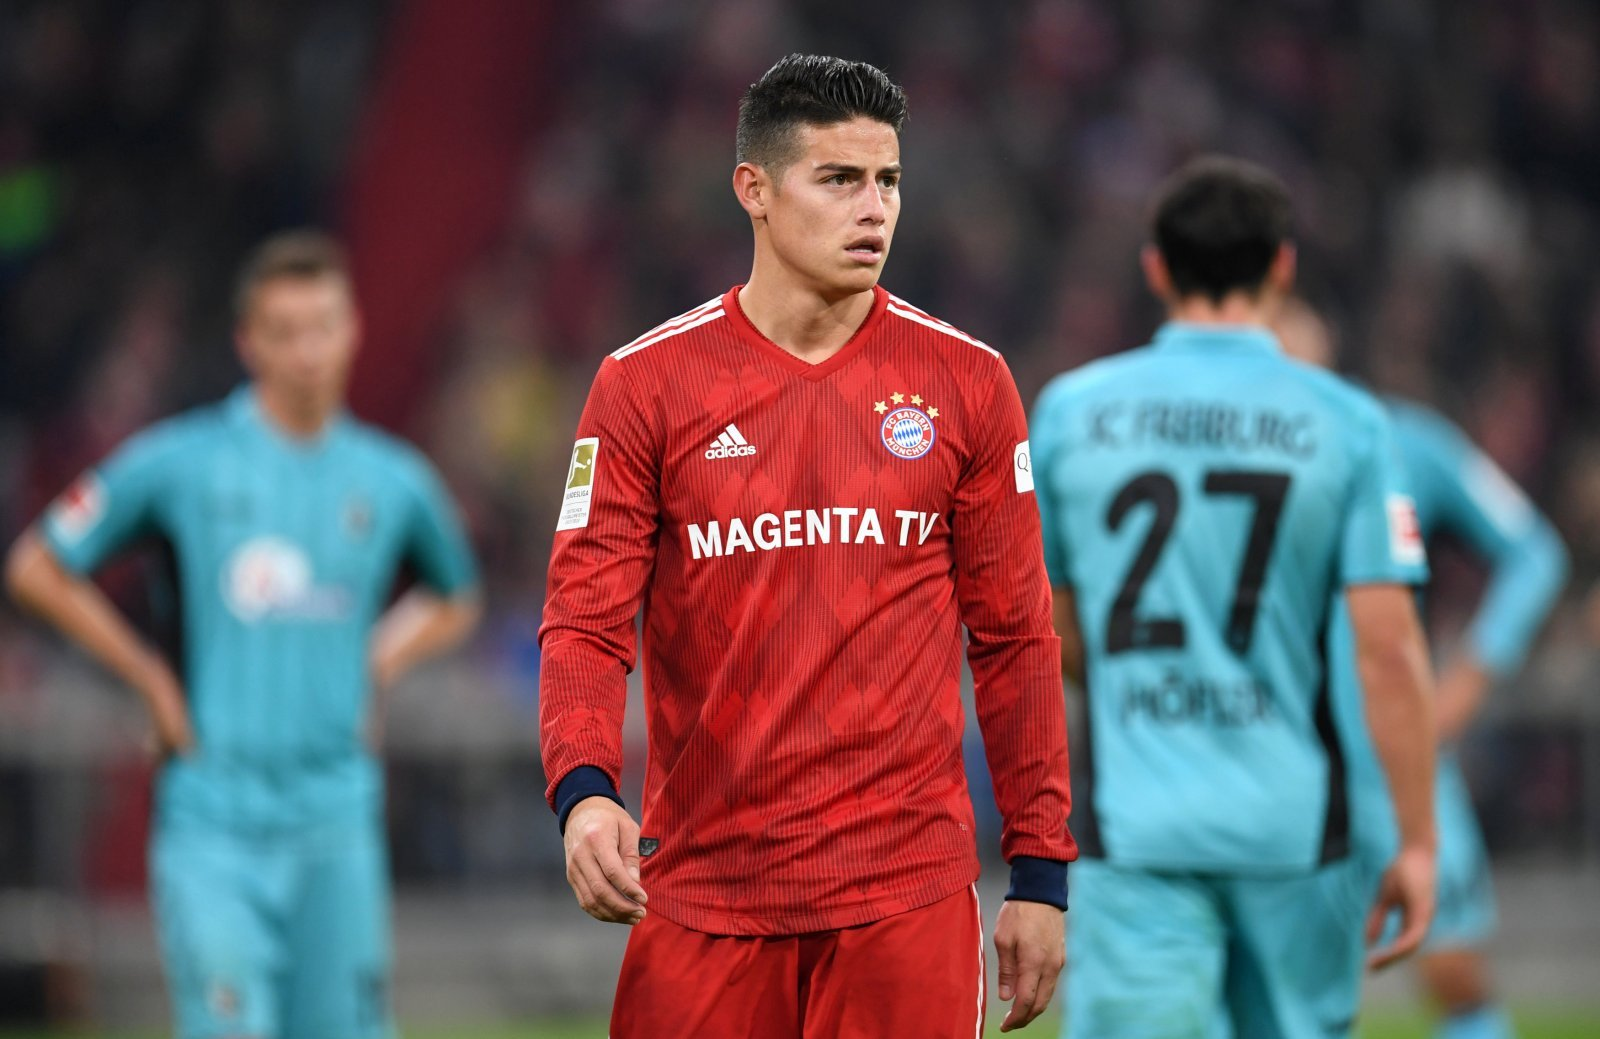 Liverpool deny interest in signing James Rodriguez